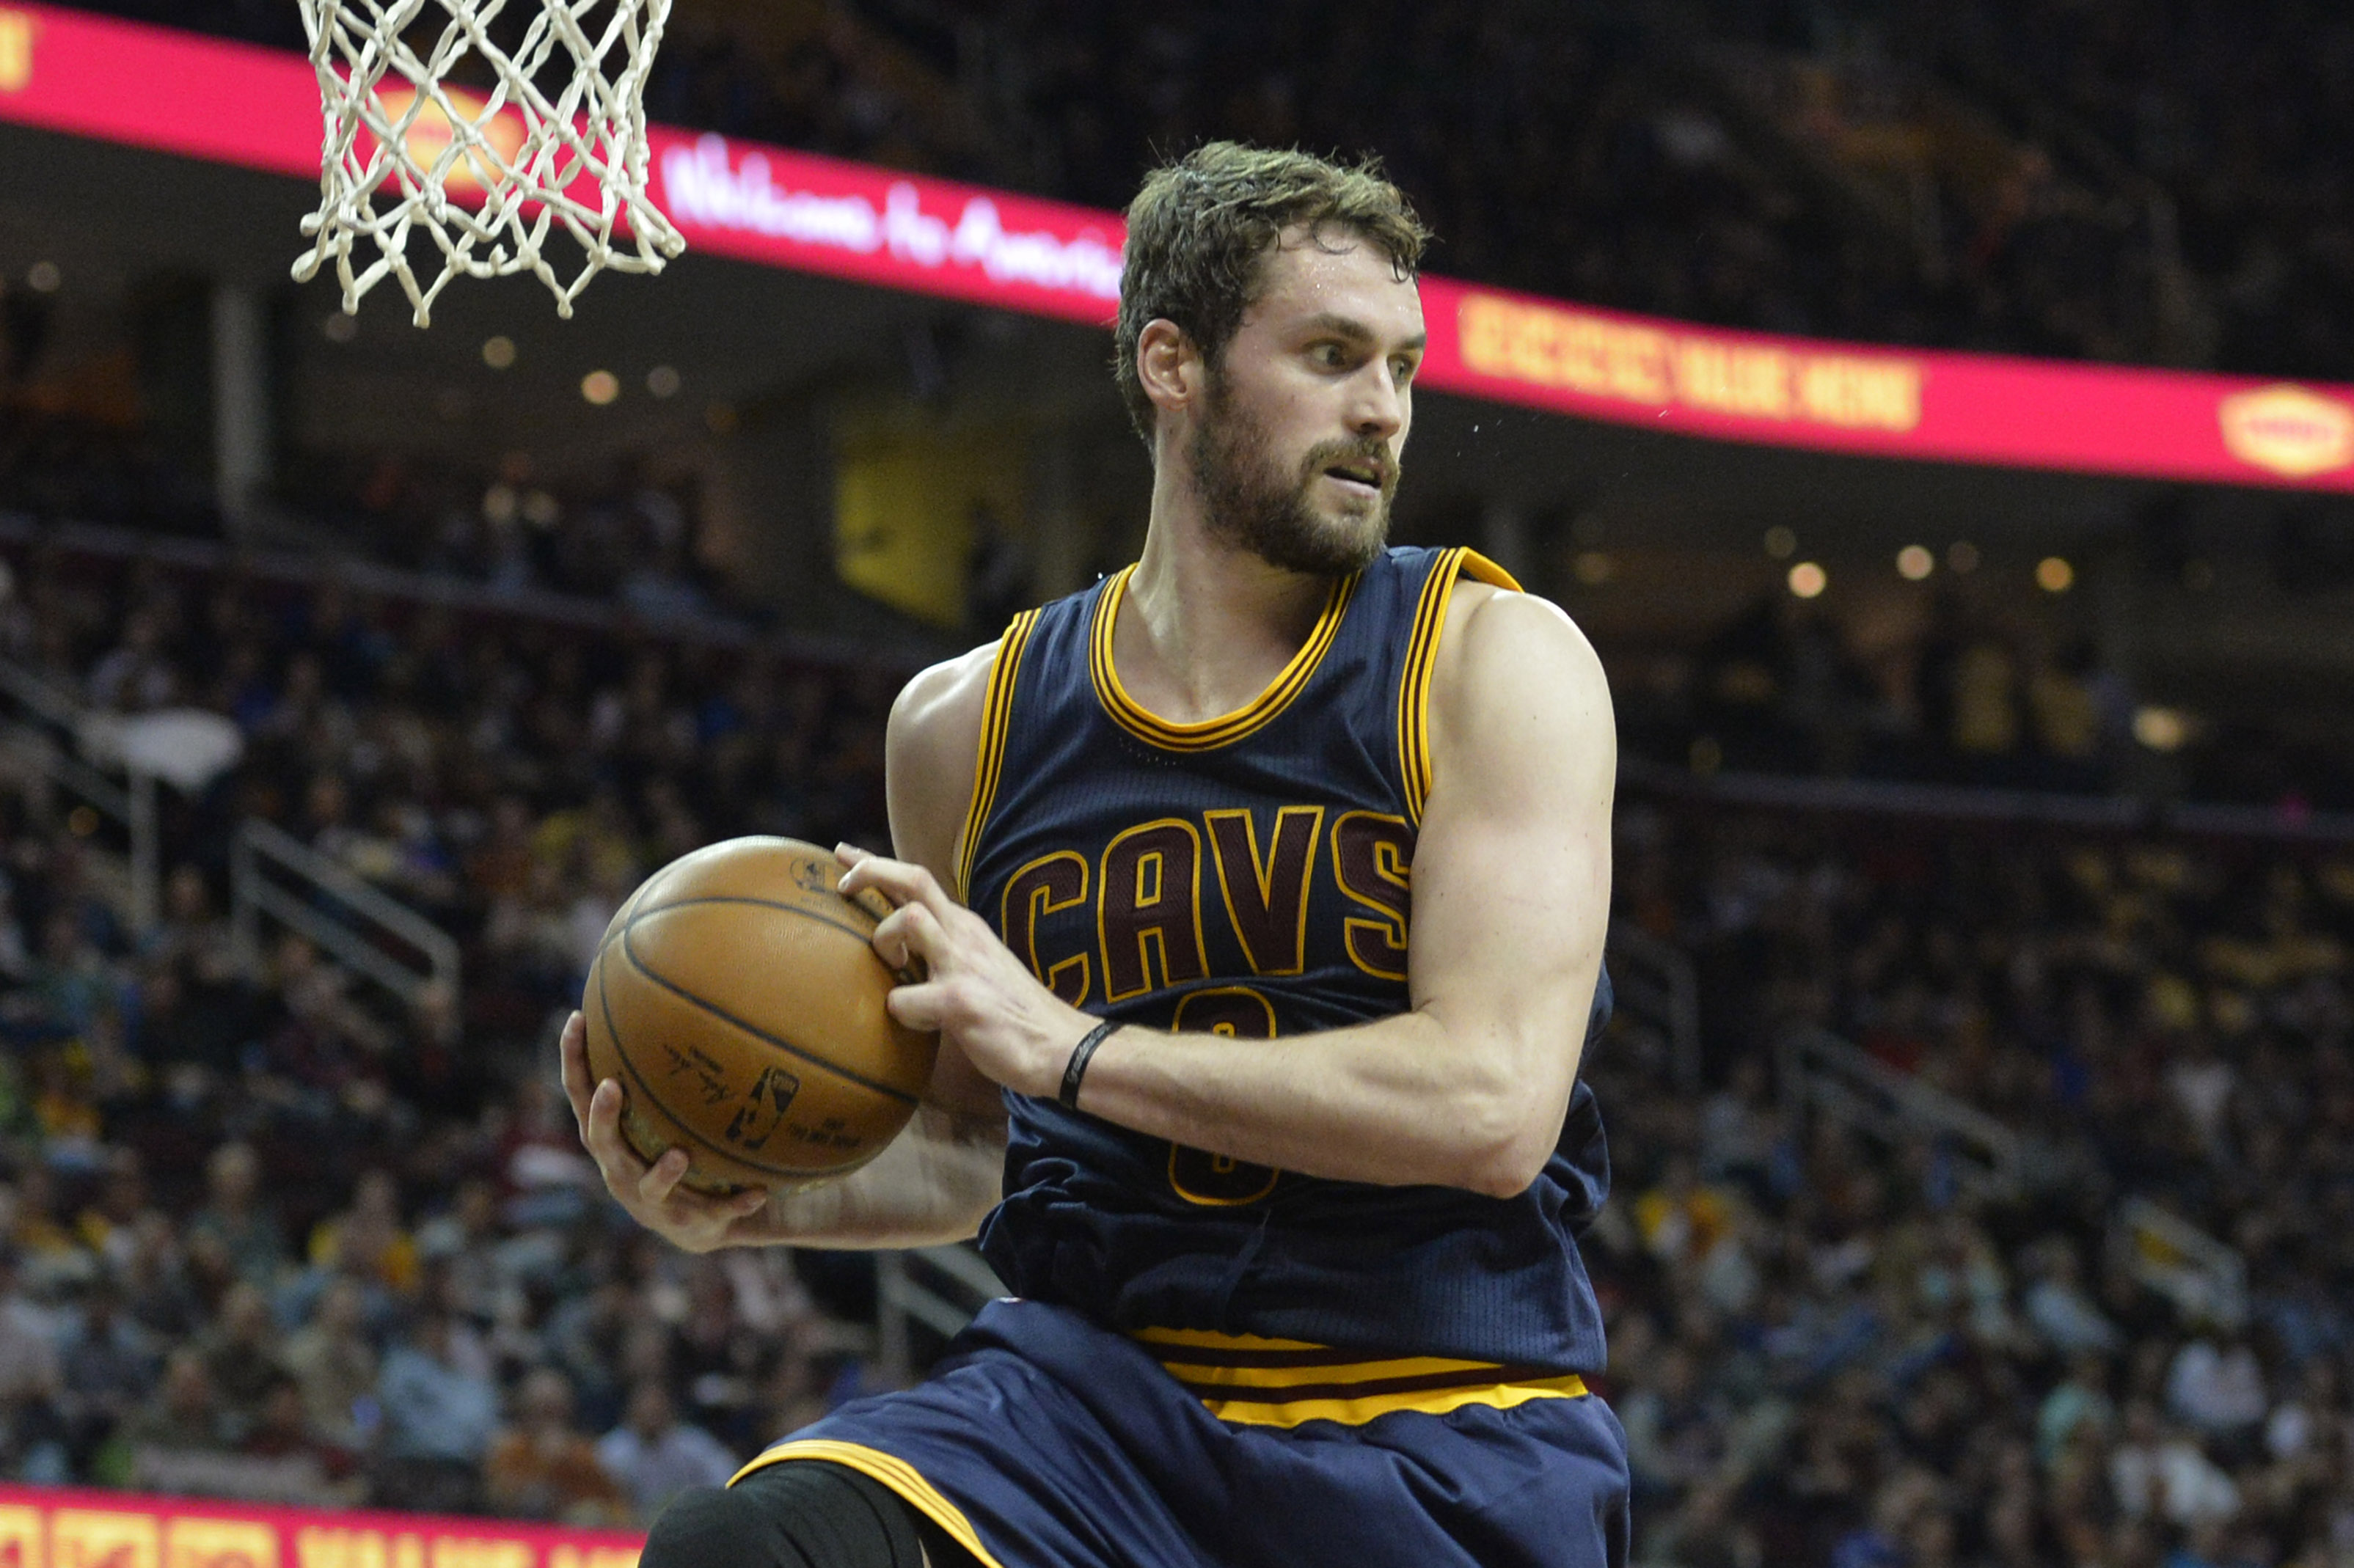 Kevin Love will opt out of his current contract, according to a person familiar with the situation. (Photo: David Richard, USA TODAY Sports)